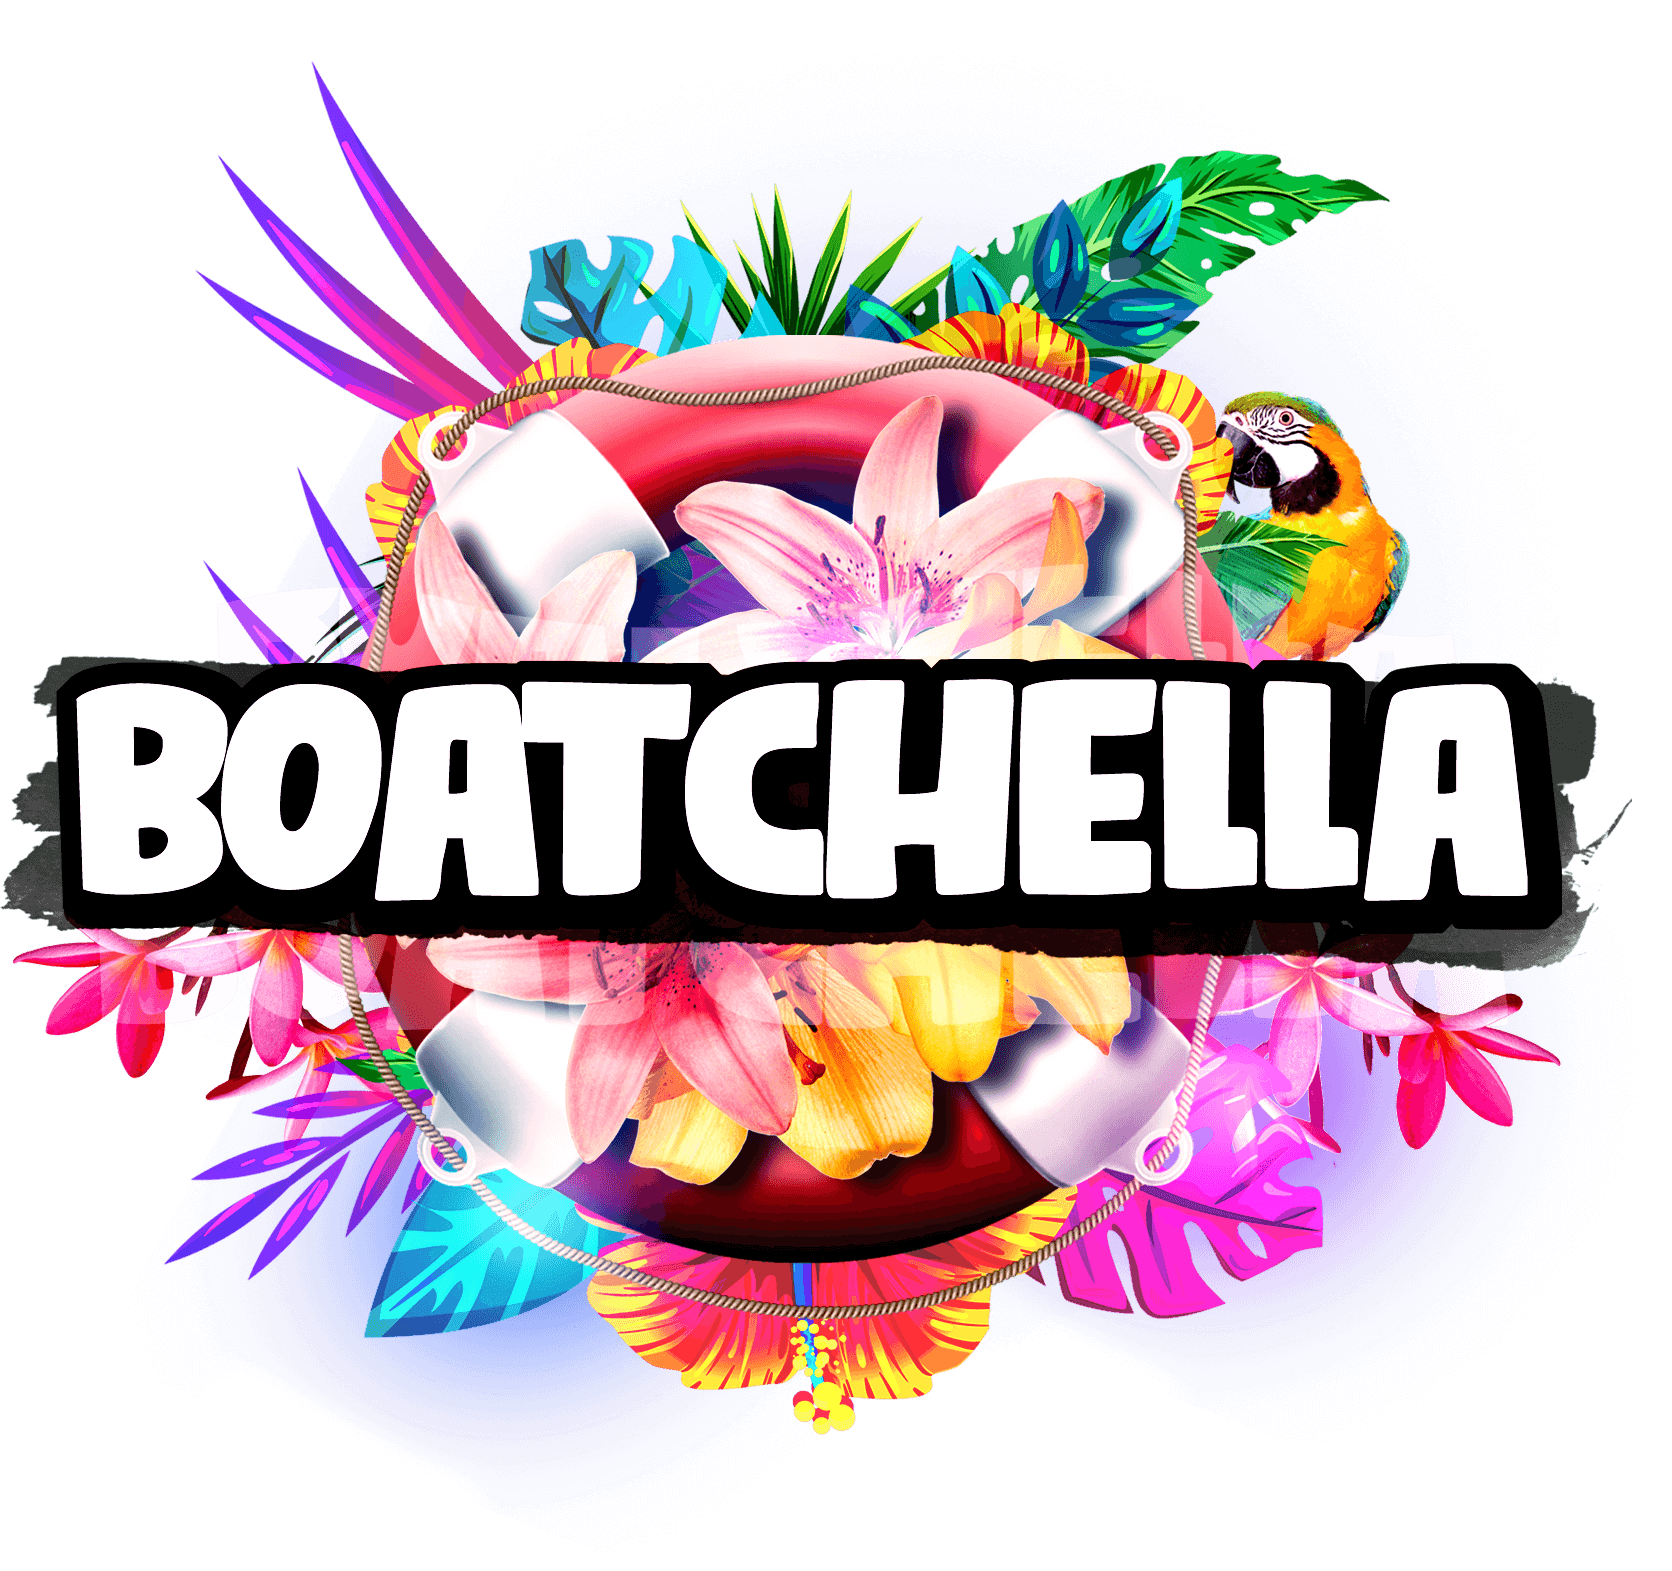 Boatchella